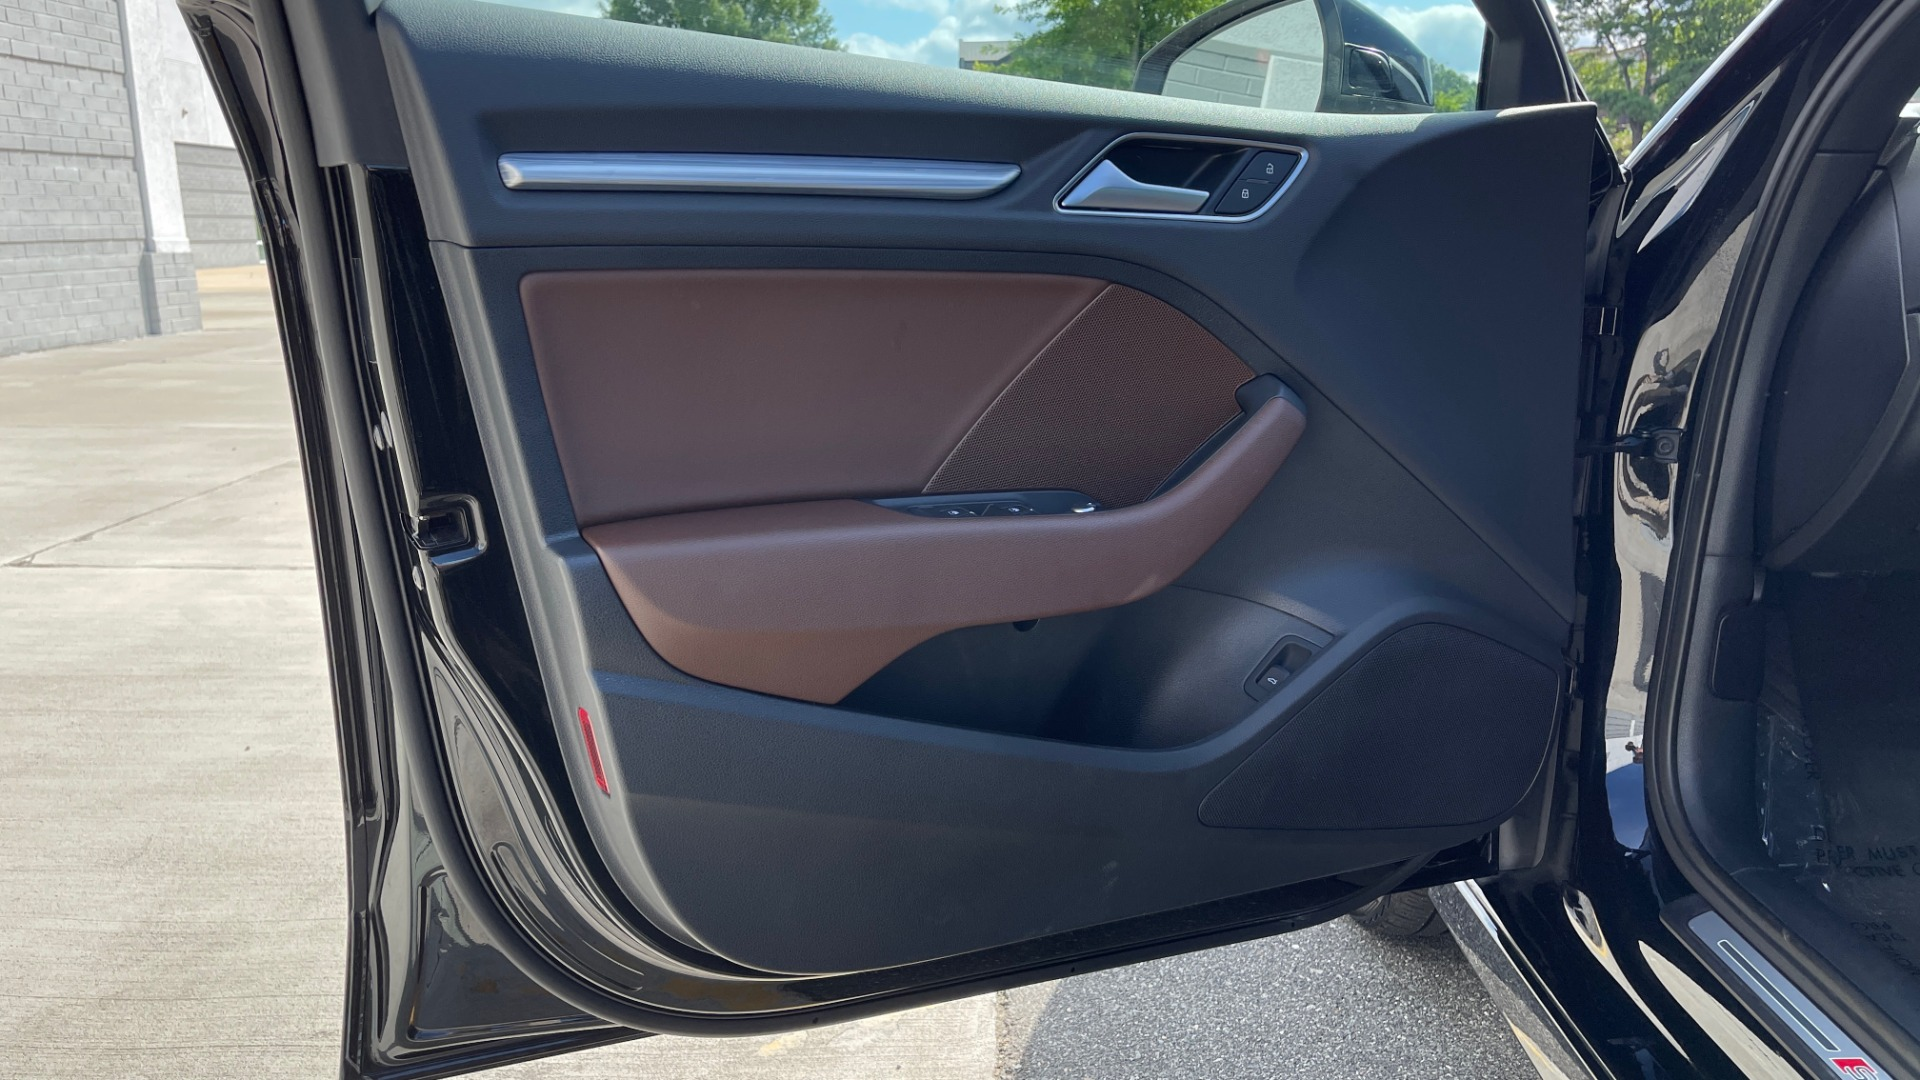 Used 2018 Audi A3 SEDAN PREMIUM PLUS / S-LINE / PANO-ROOF / PARK SYS / REARVIEW for sale $31,795 at Formula Imports in Charlotte NC 28227 24